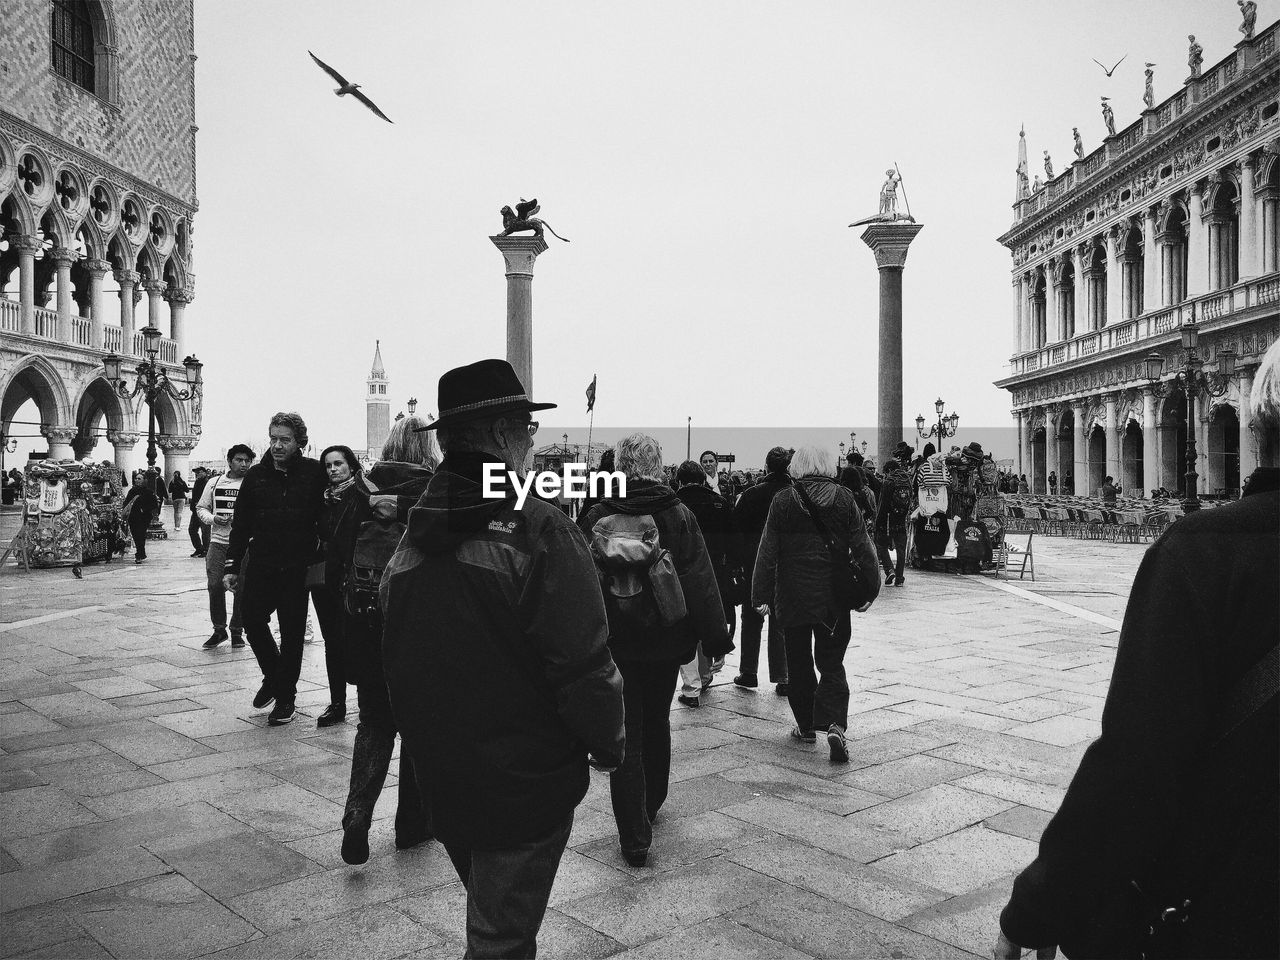 People at piazza san marco against sky in city